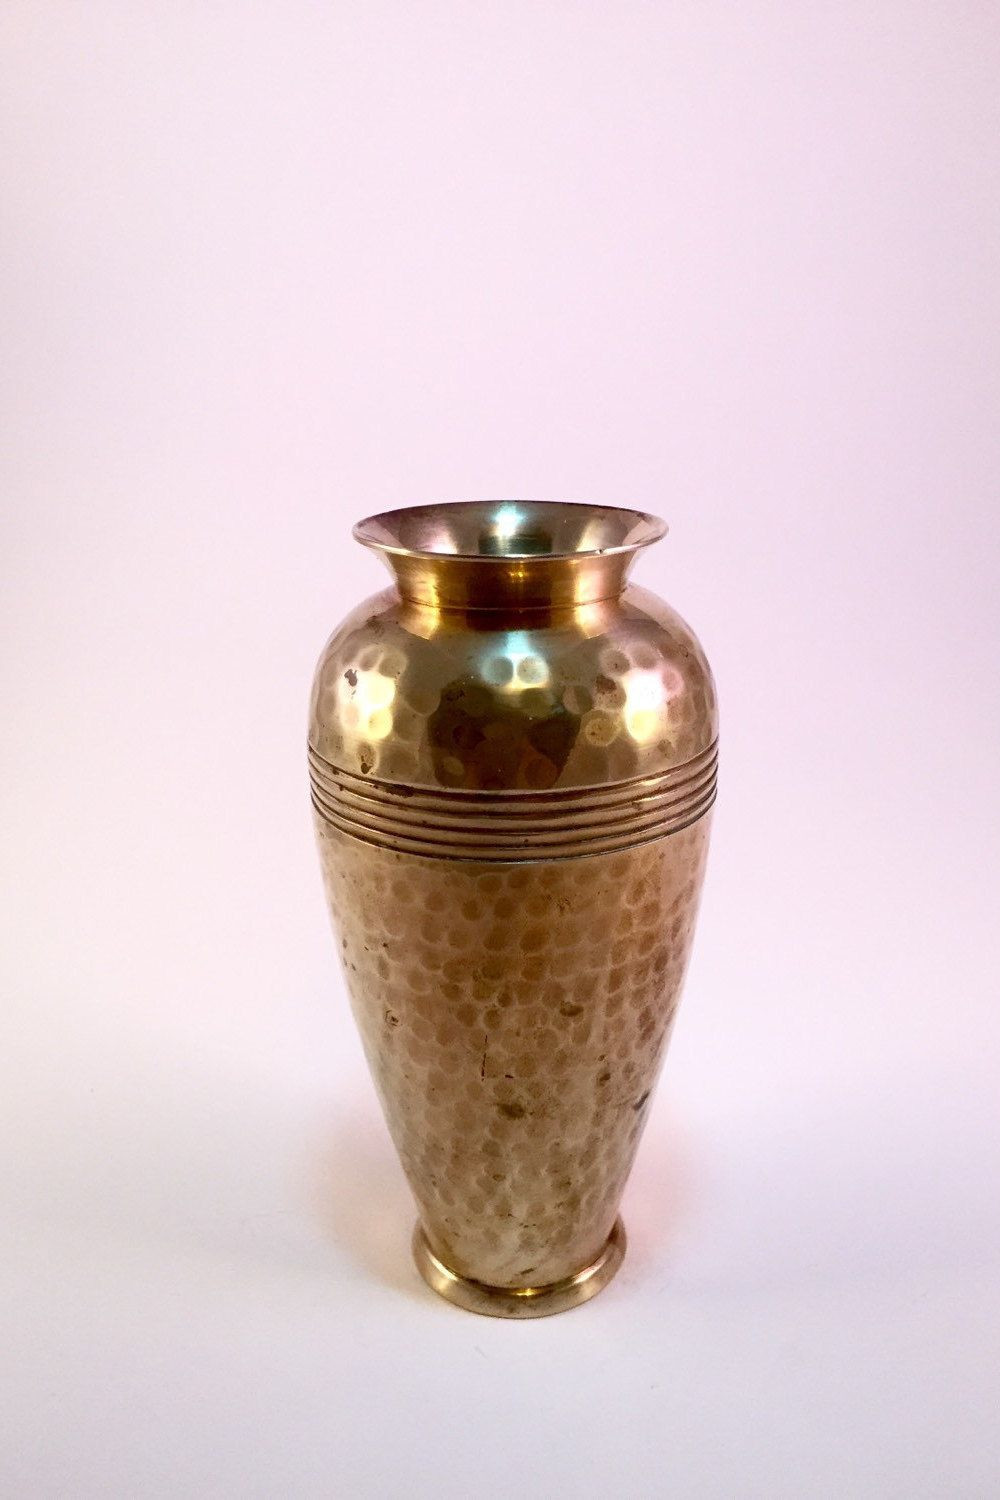 solid brass vase of pin by red brick vintage on etsy promos pinterest solid brass with regard to pin by red brick vintage on etsy promos pinterest solid brass etsy and vintage vases